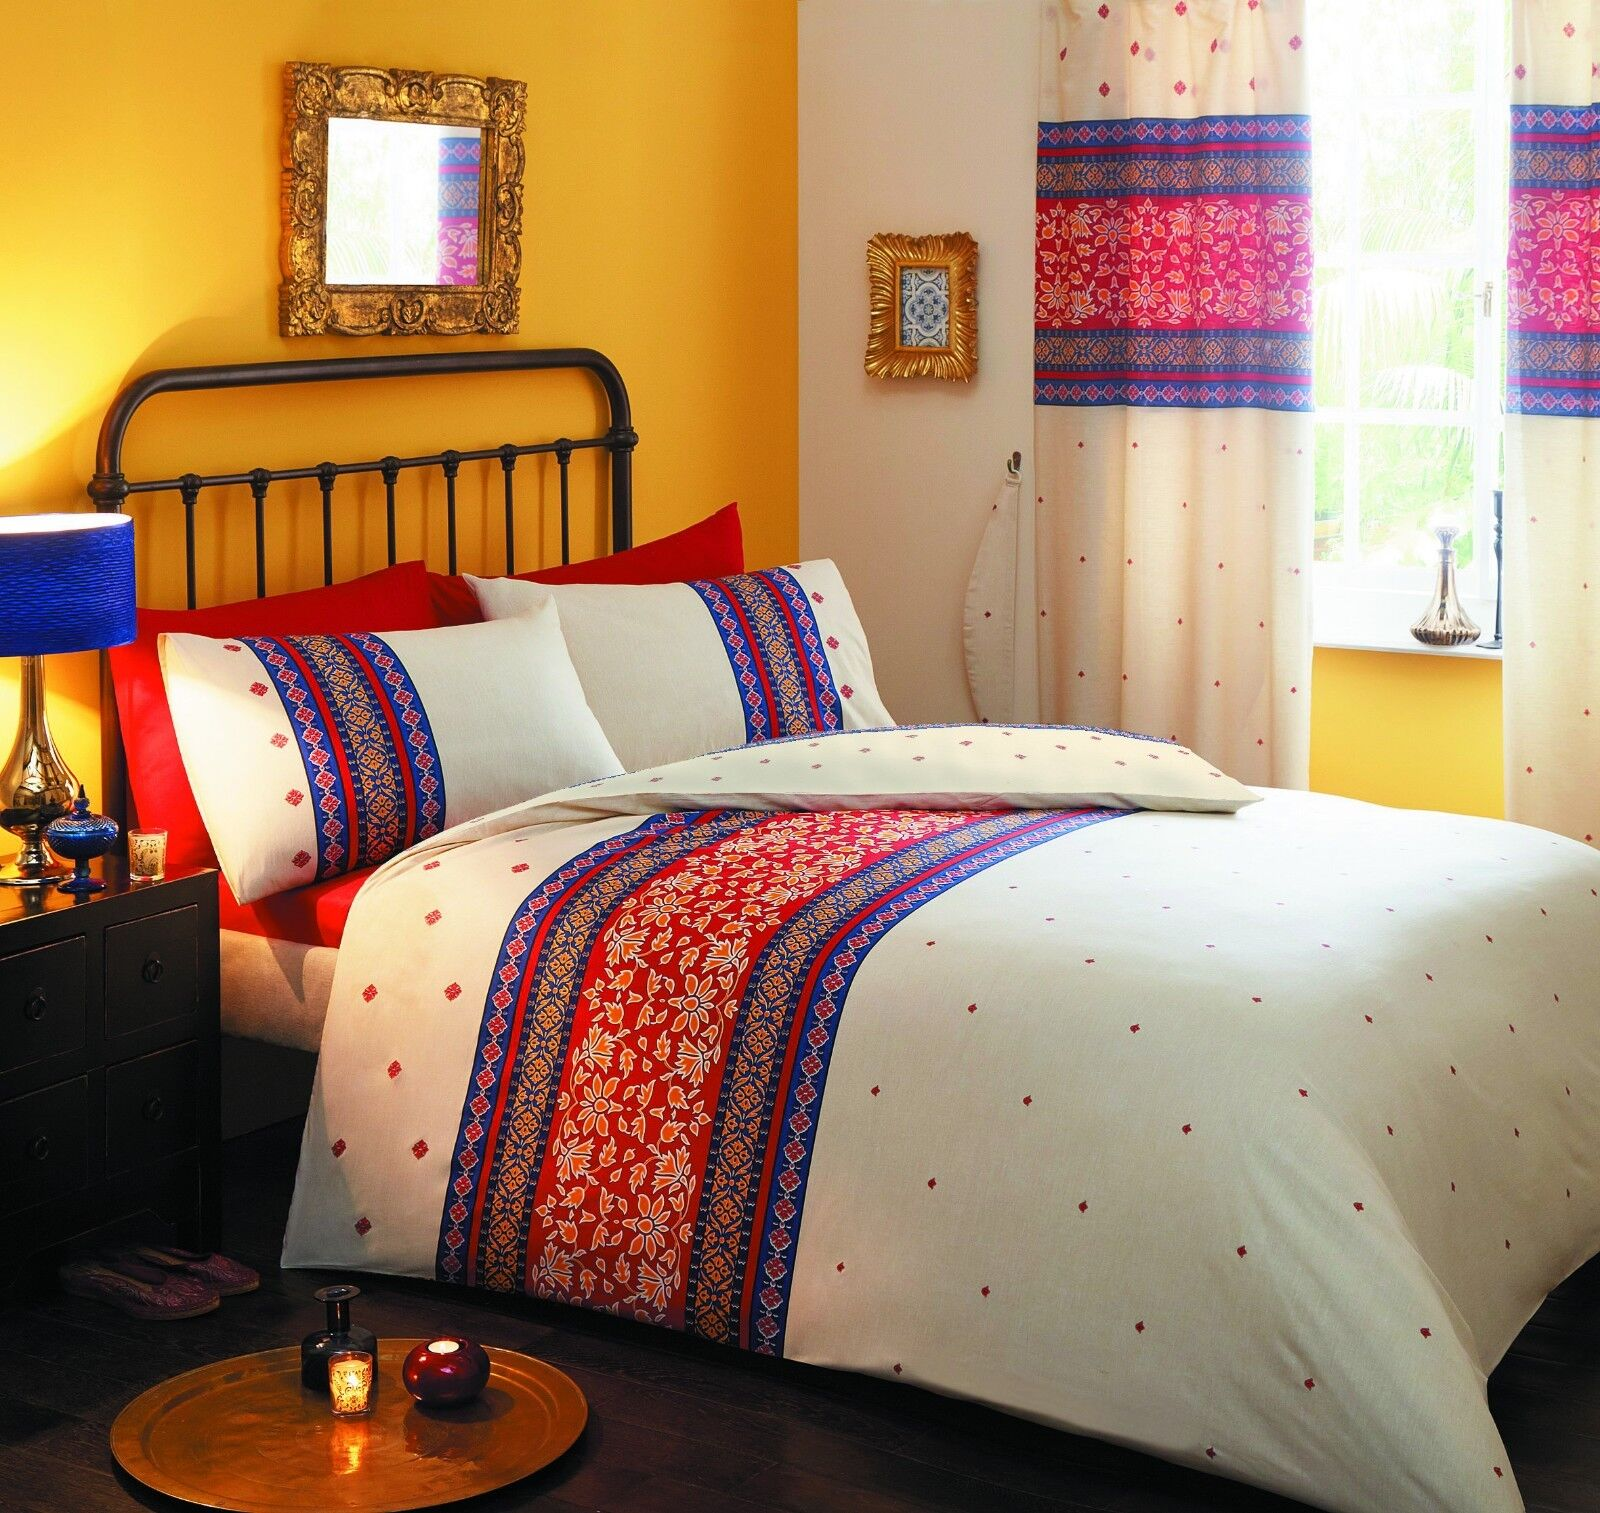 CLEARANCE SALE OFFER - Duvet Quilt Cover Bedding Sets With P